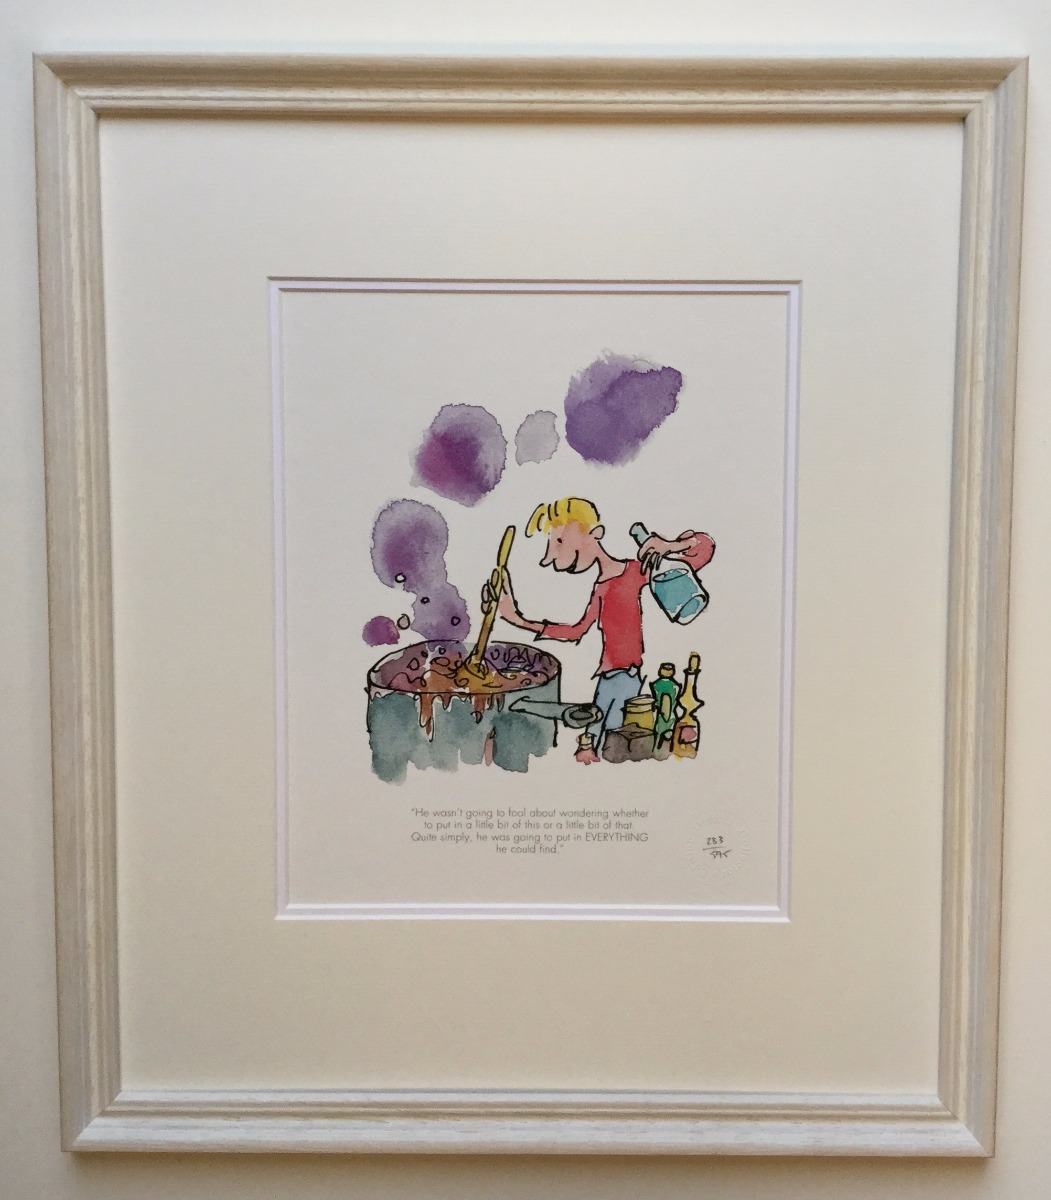 He Put in Everything he Could Find by Quentin Blake, Children